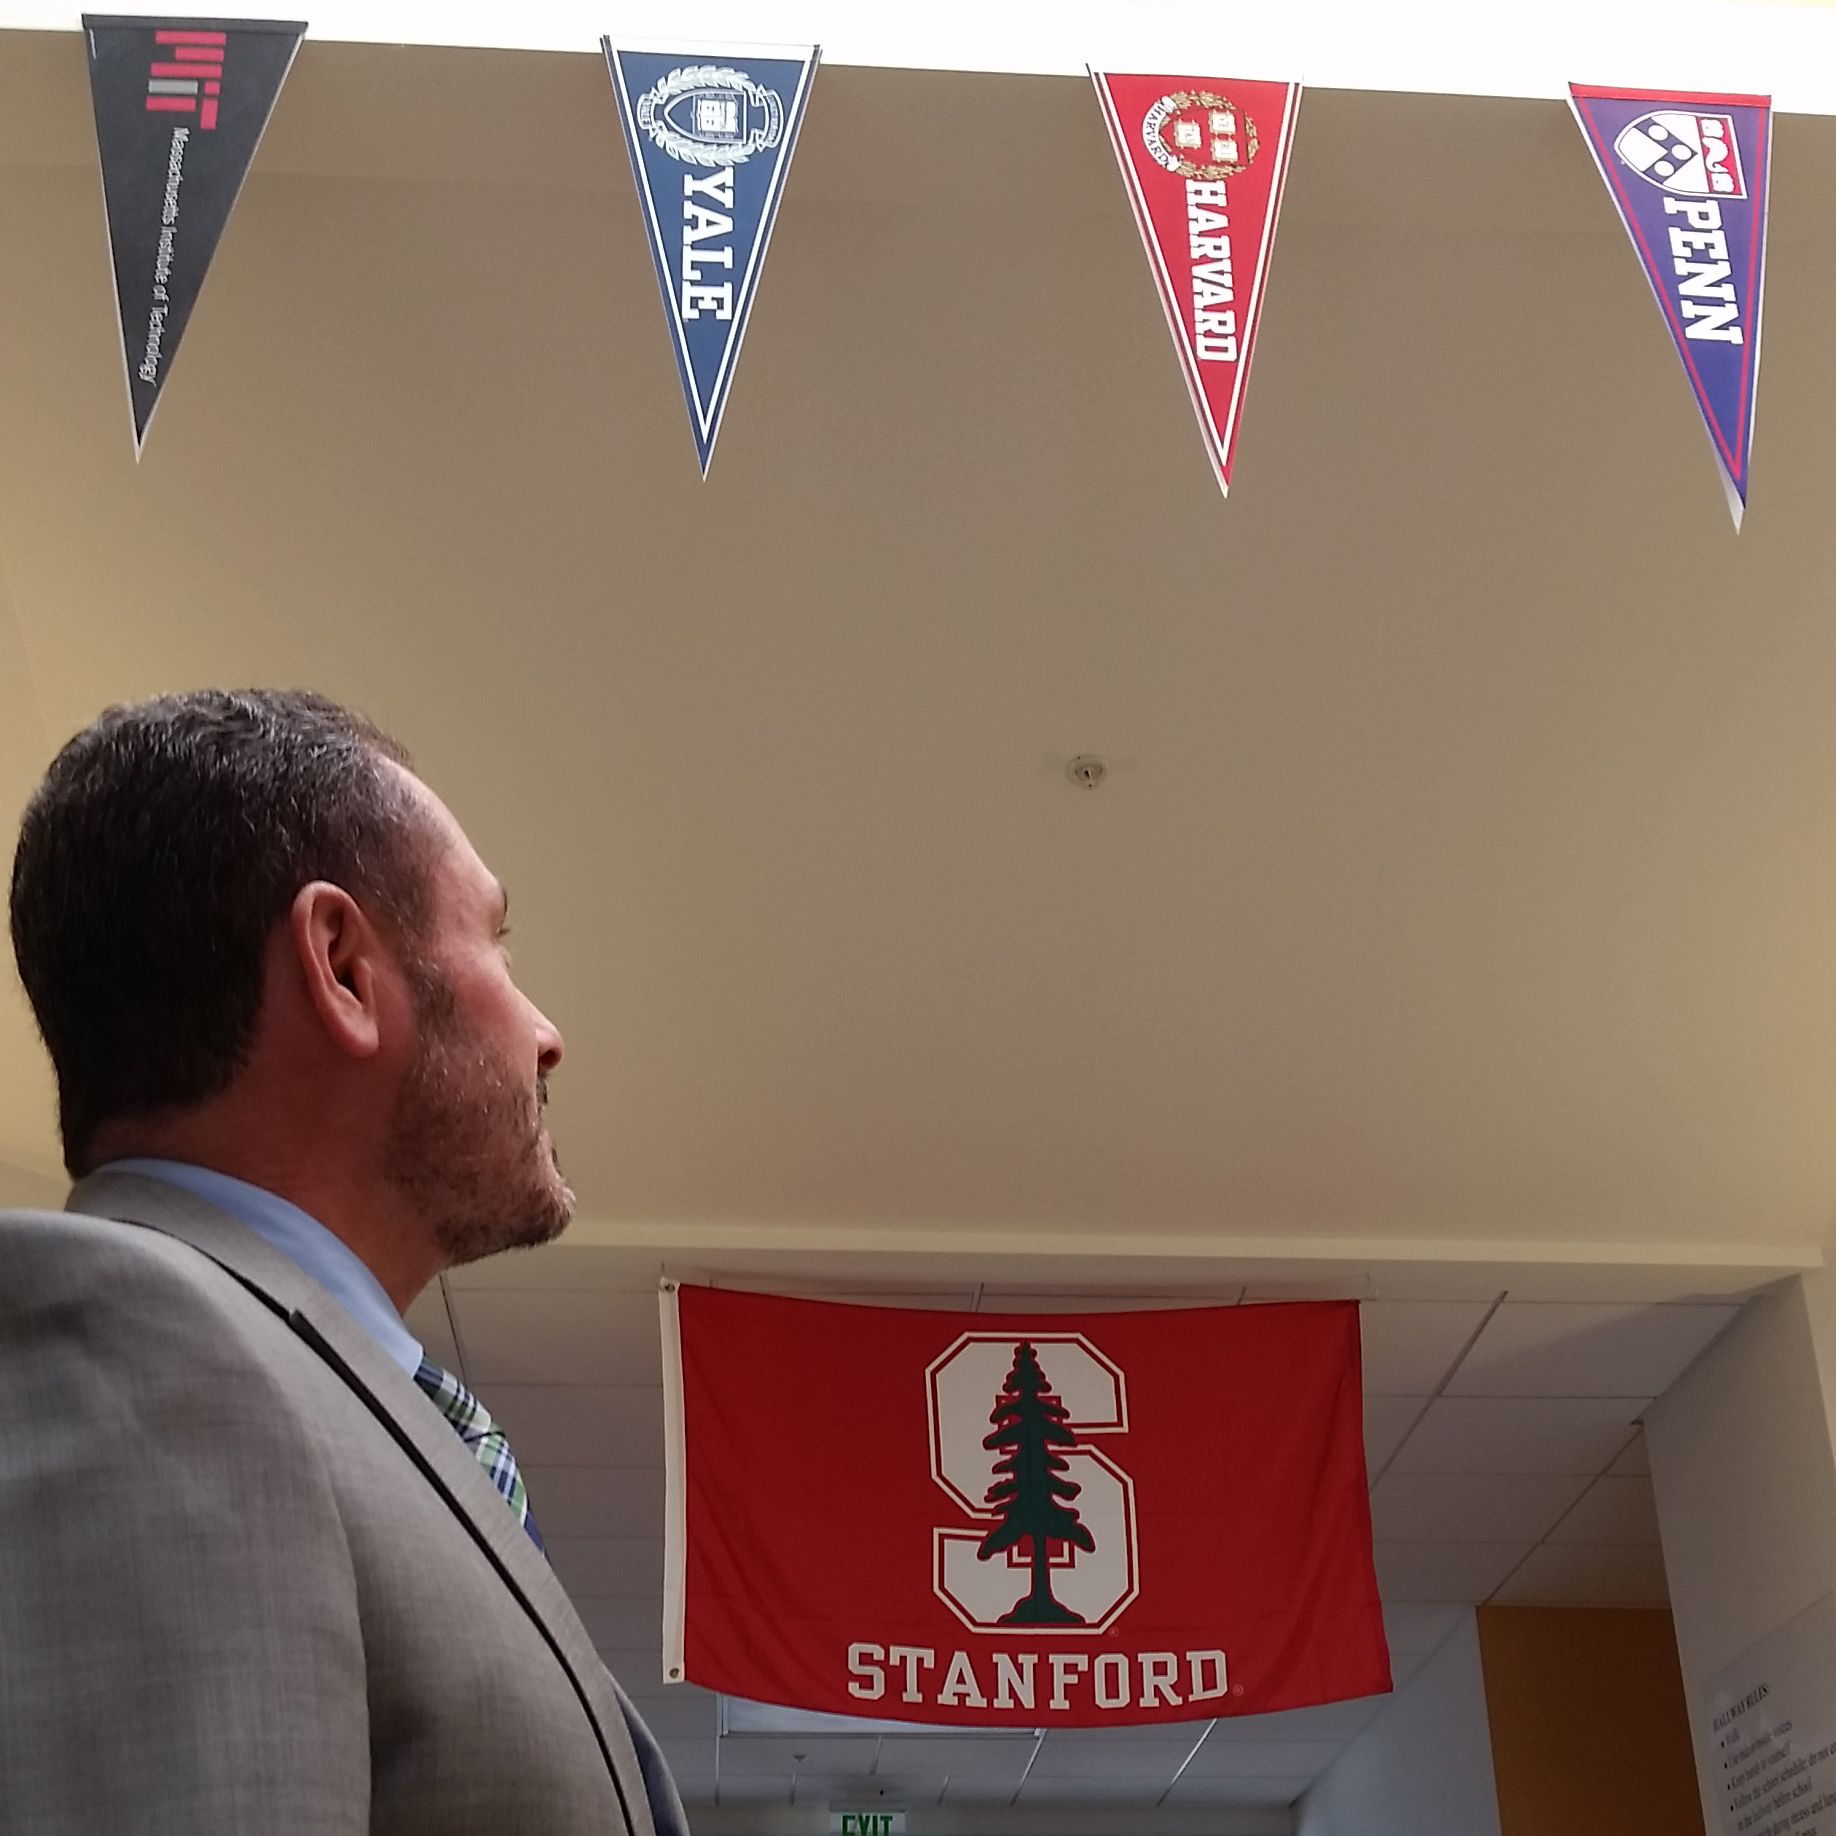 Guillermo Morales '94 looks at the college pendants hanging in the hallway of Thomas Jefferson Elementary School (San Leandro, Calif.).